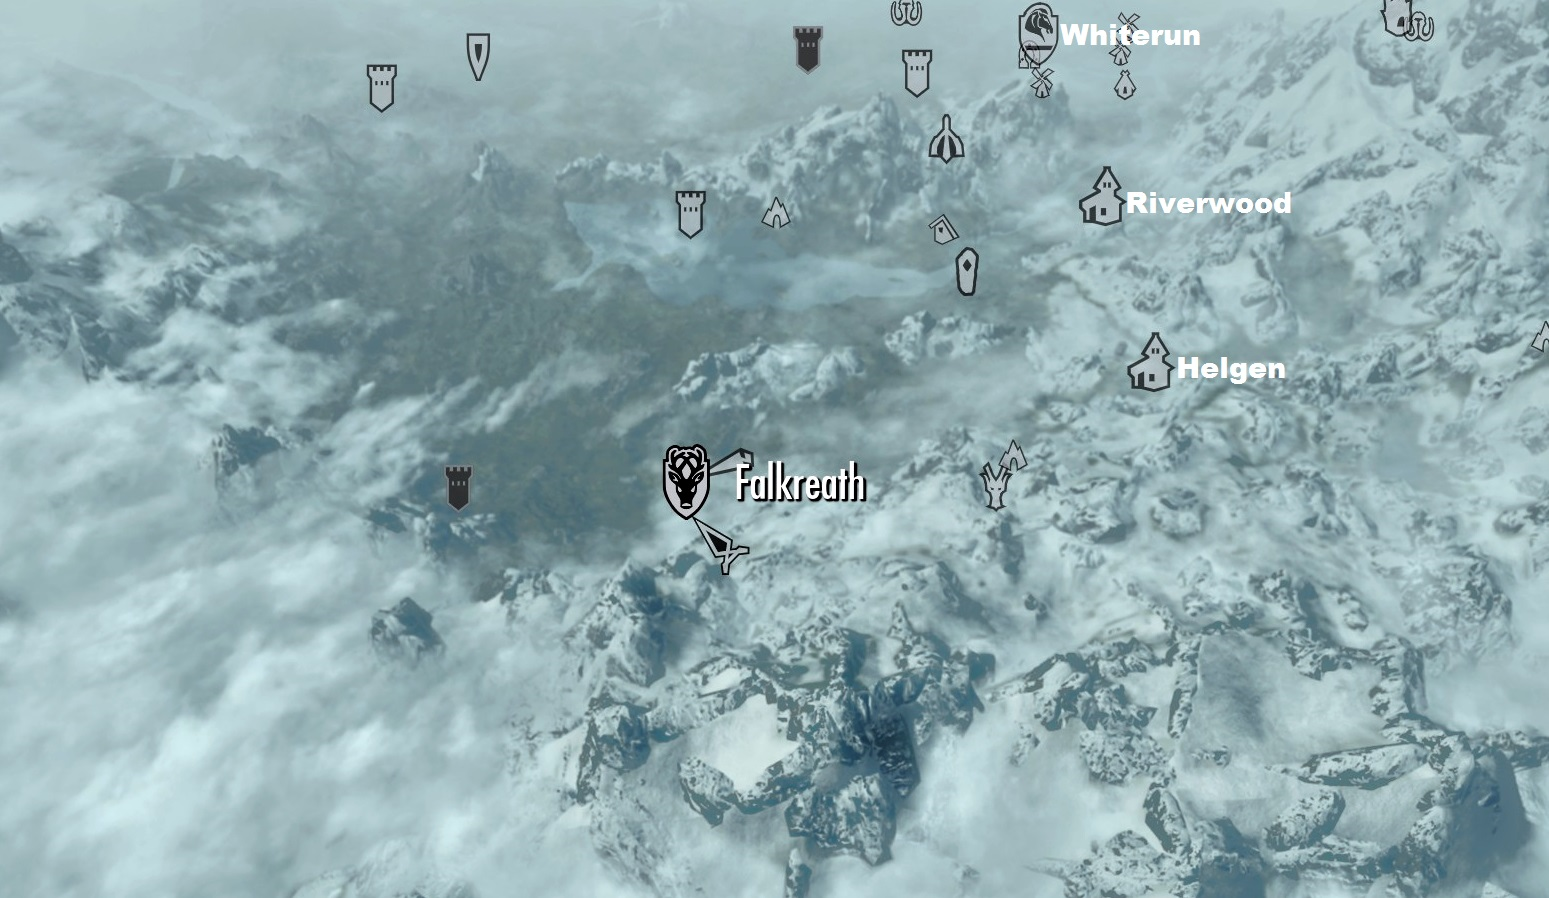 Falkreath on mappng Image Falkreath on